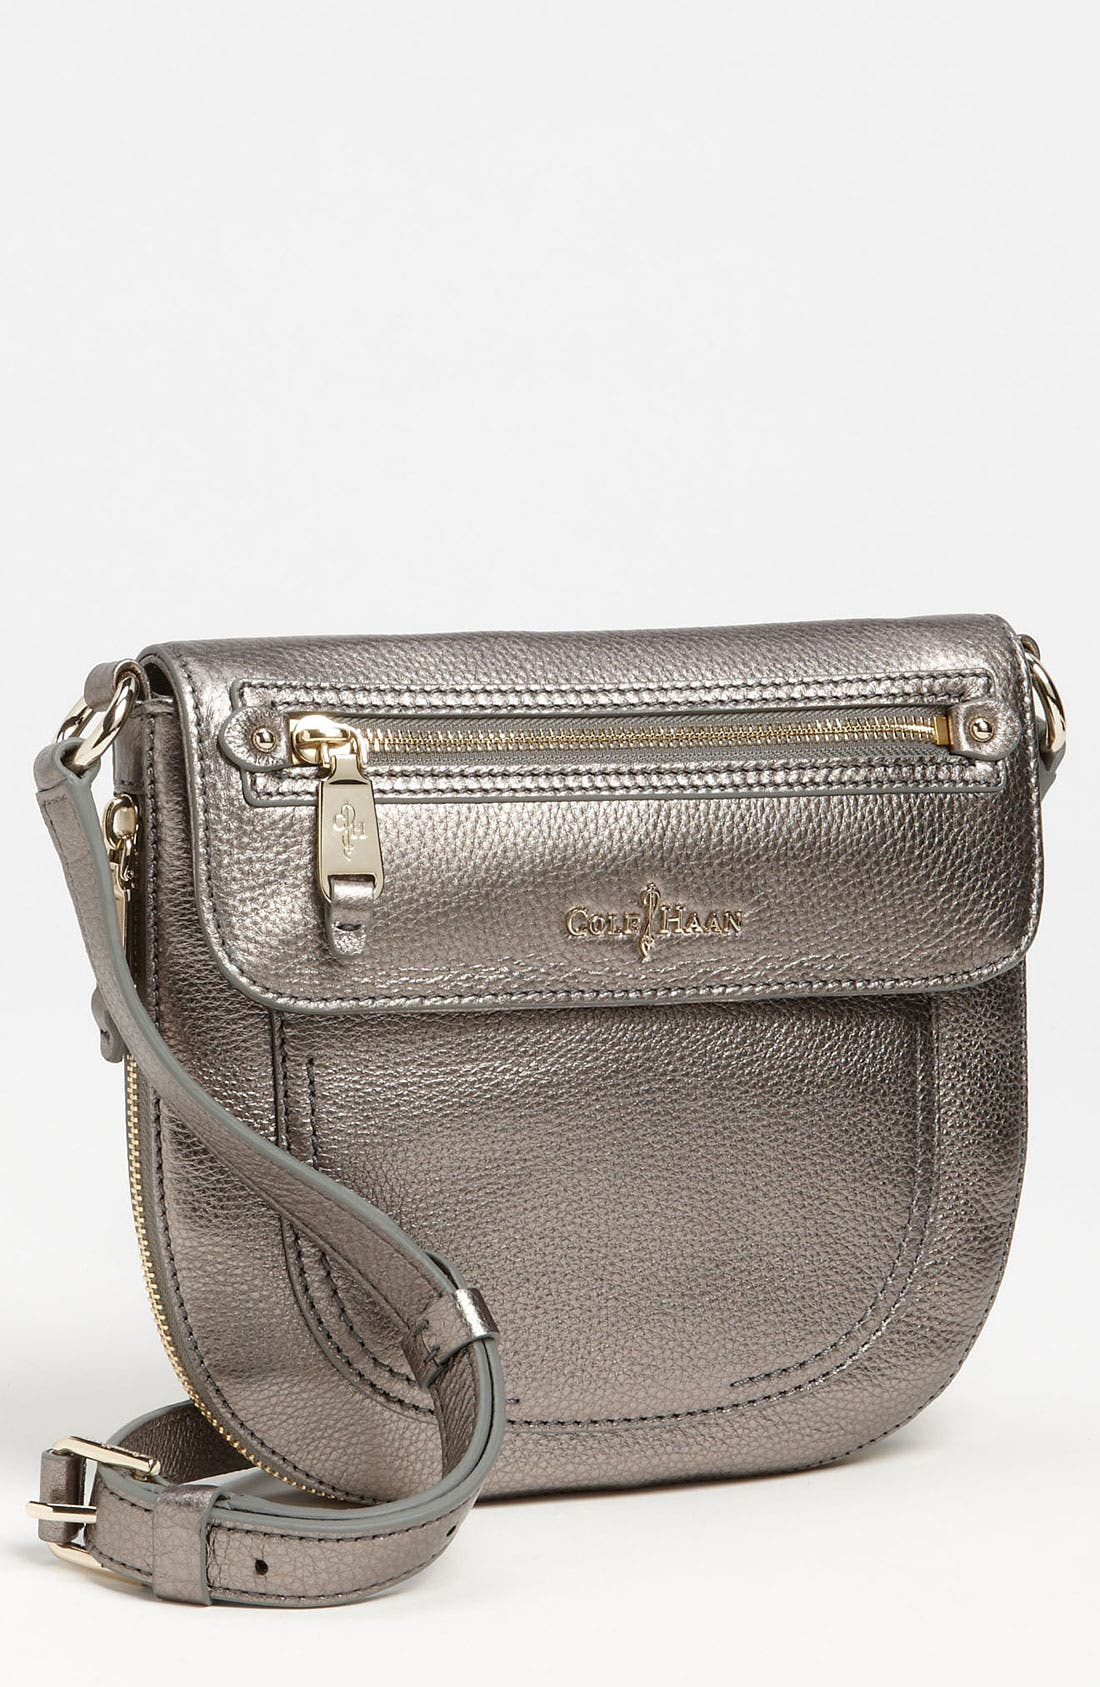 Alternate Image 1 Selected - Cole Haan 'Linley - Canteen' Crossbody Bag